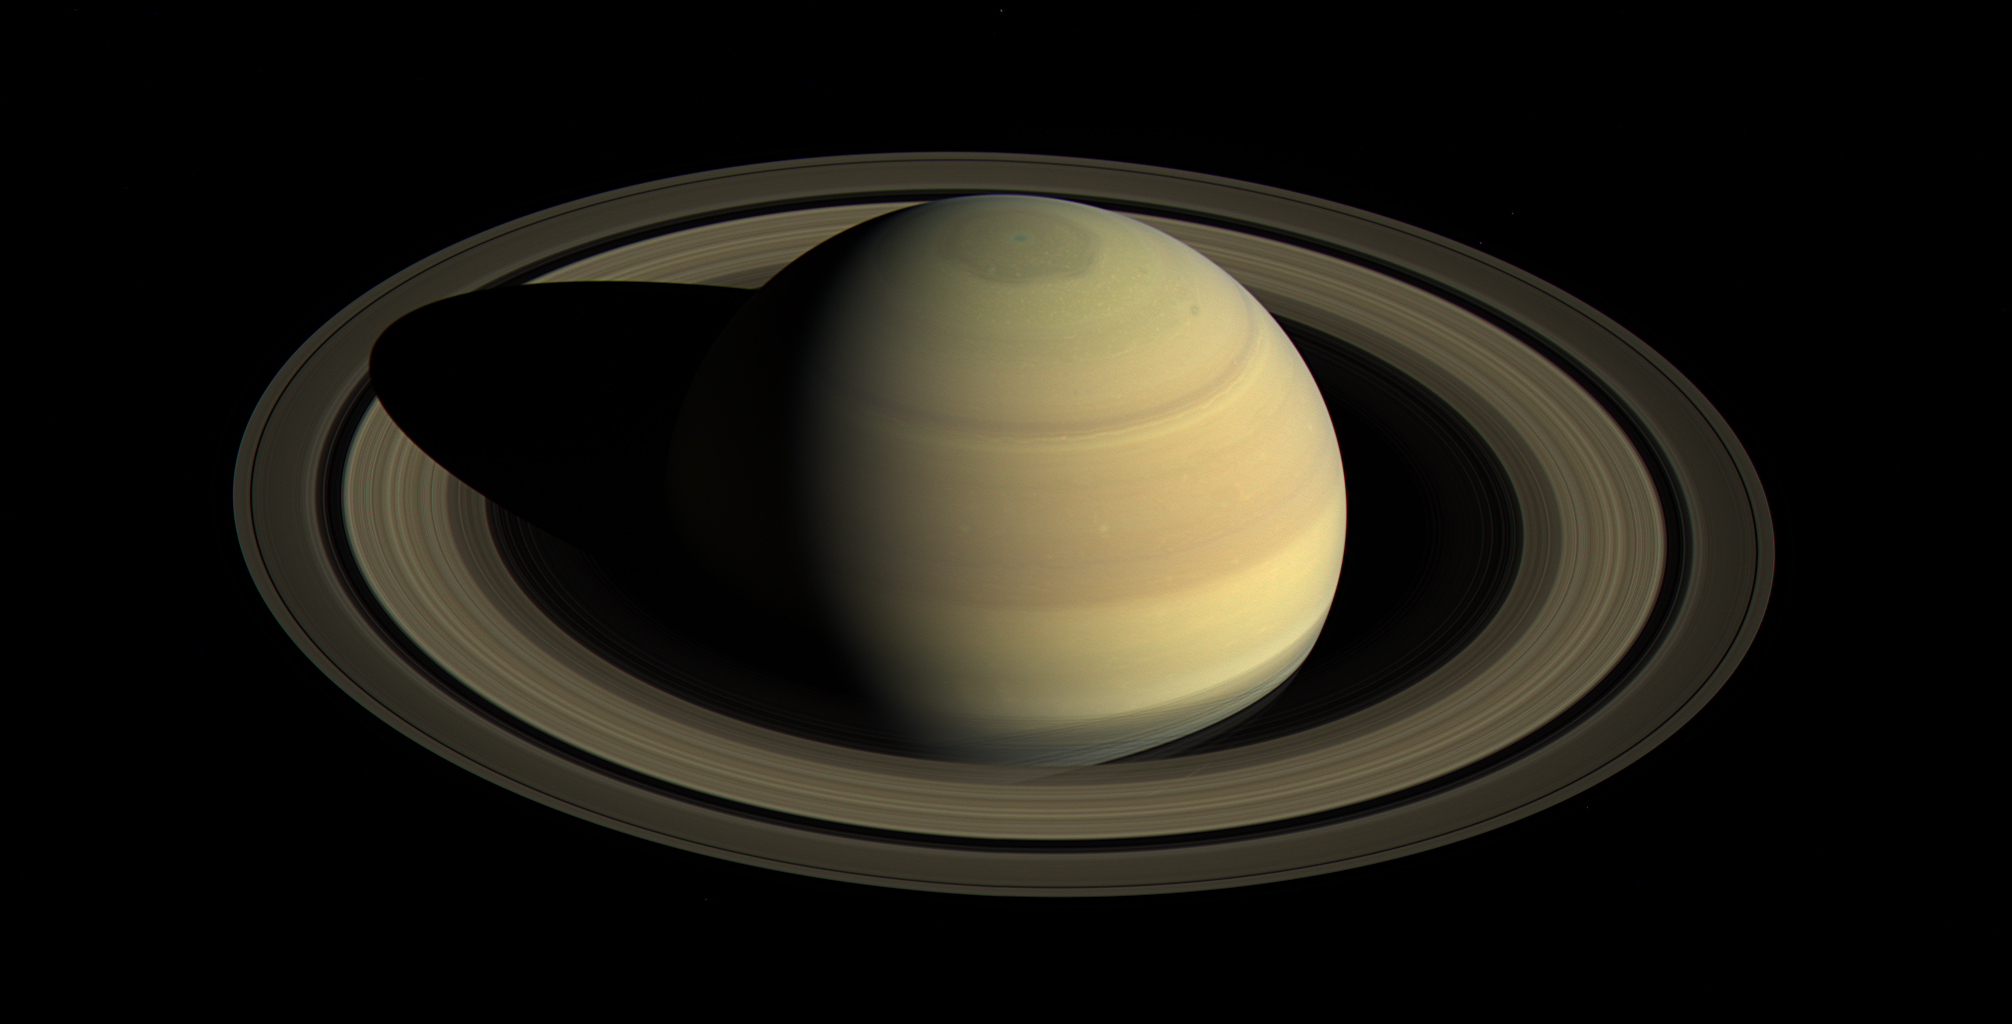 10 bizarre theories about the mysterious Saturn